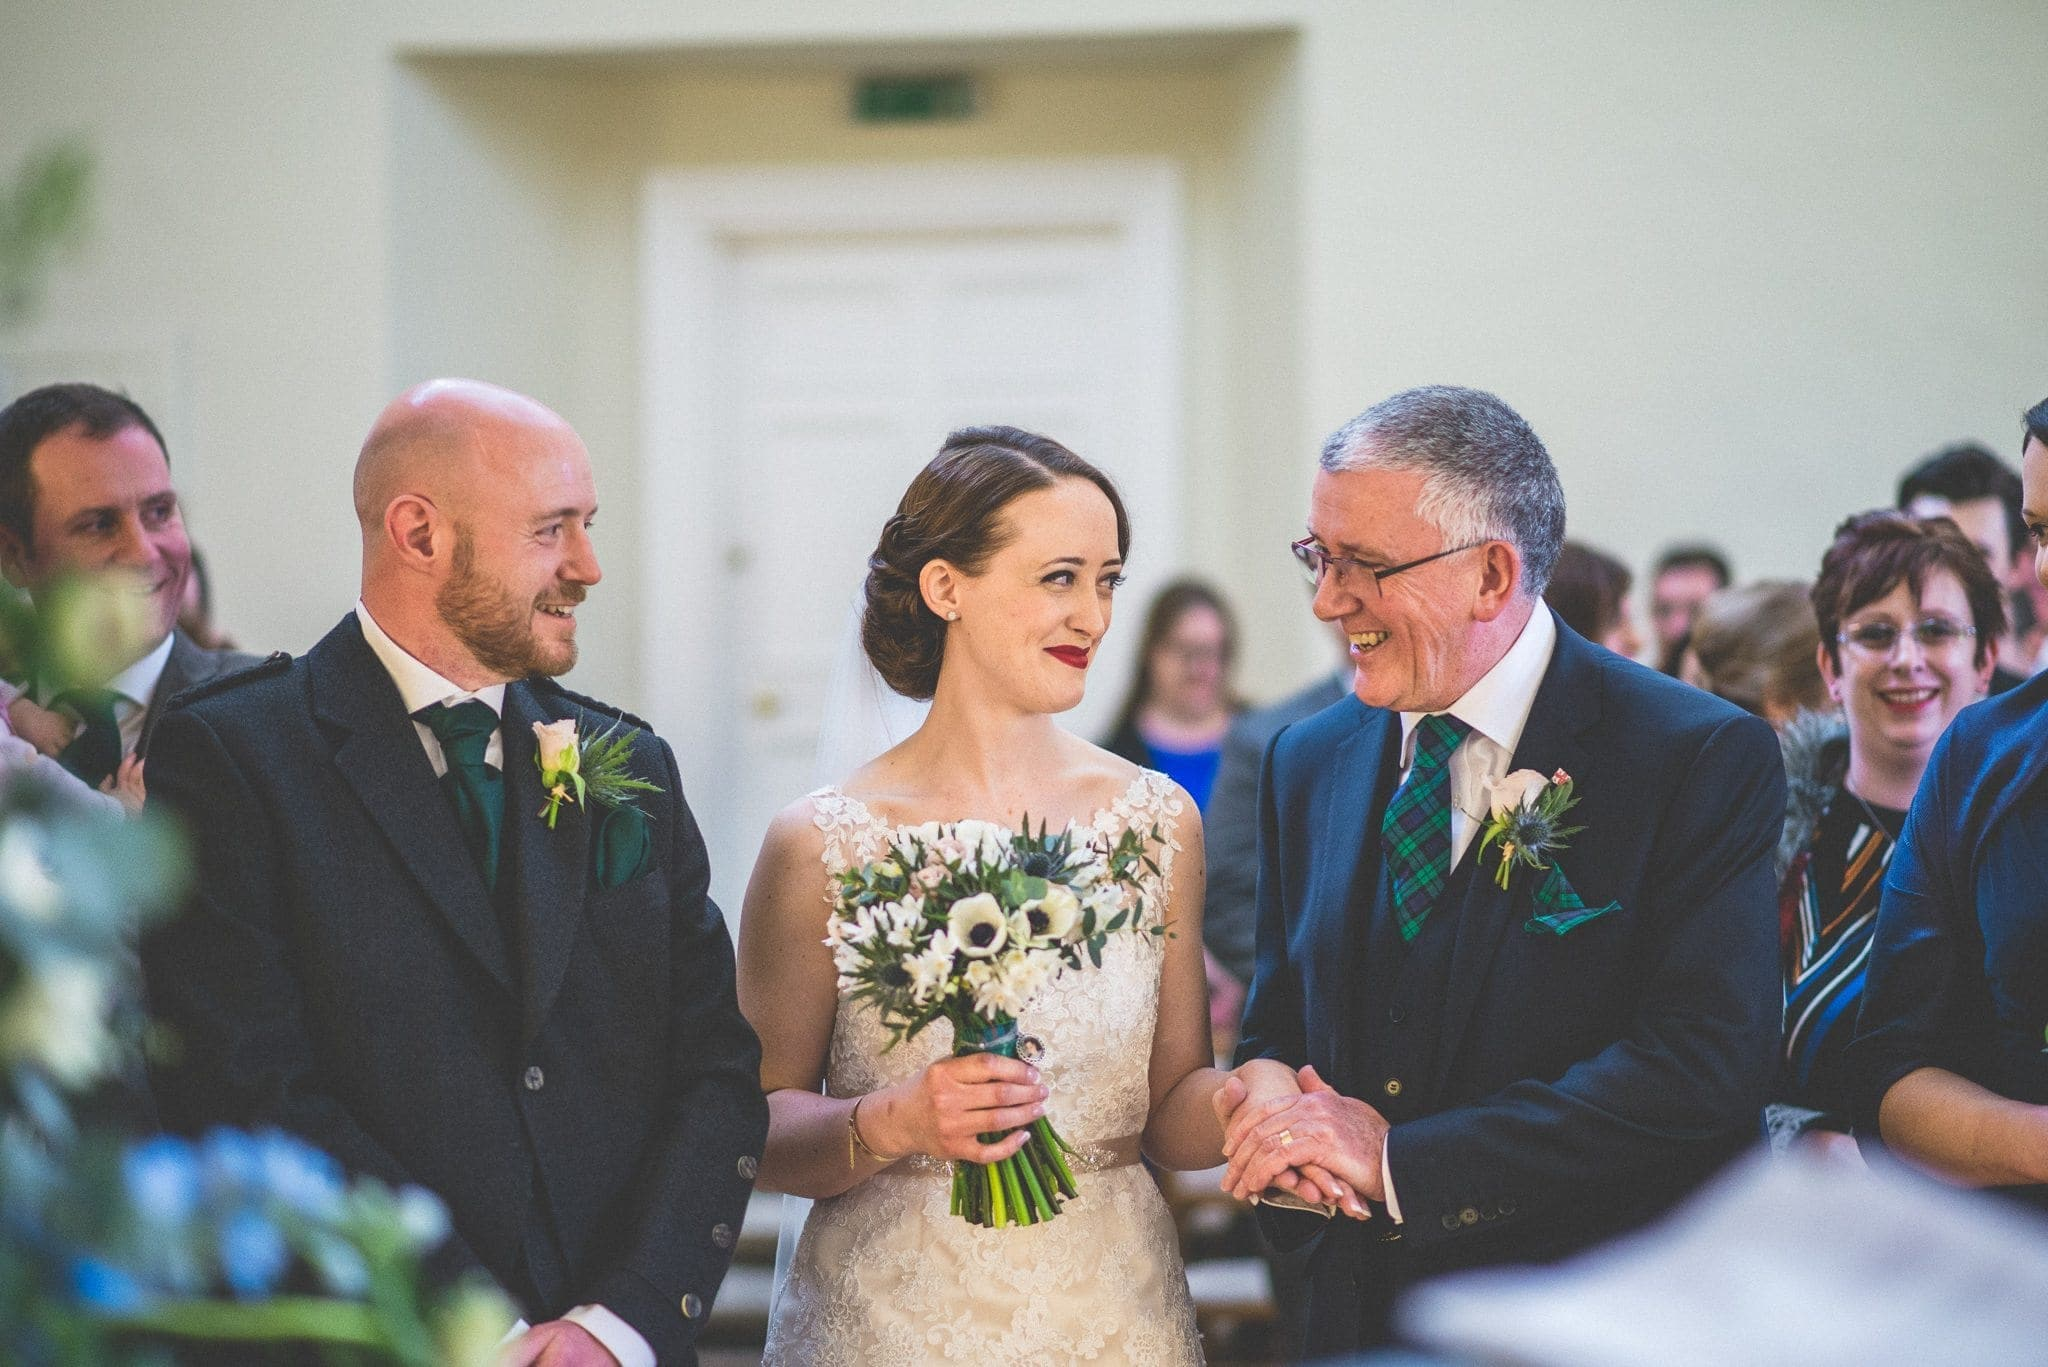 Bride smiling at her dad after he's walked her down the aisle